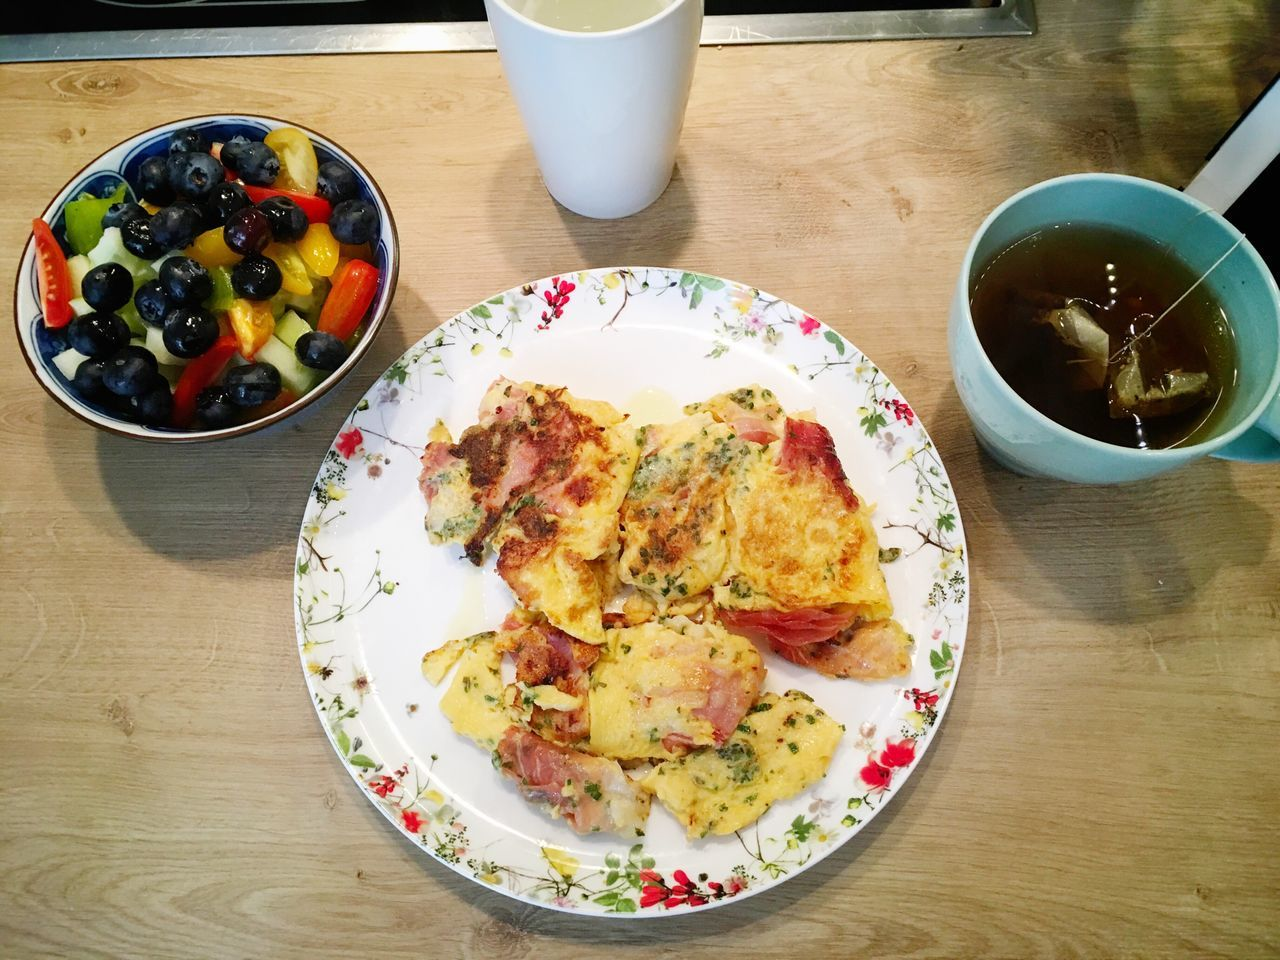 omelette with blueberries and salad Food Food And Drink Ready-to-eat Healthy Eating High Angle View Breakfast Plate Meal No People Healthy Lifestyle Scrambled Eggs Eggs... Eggs For Breakfast Blueberry Healthy Food